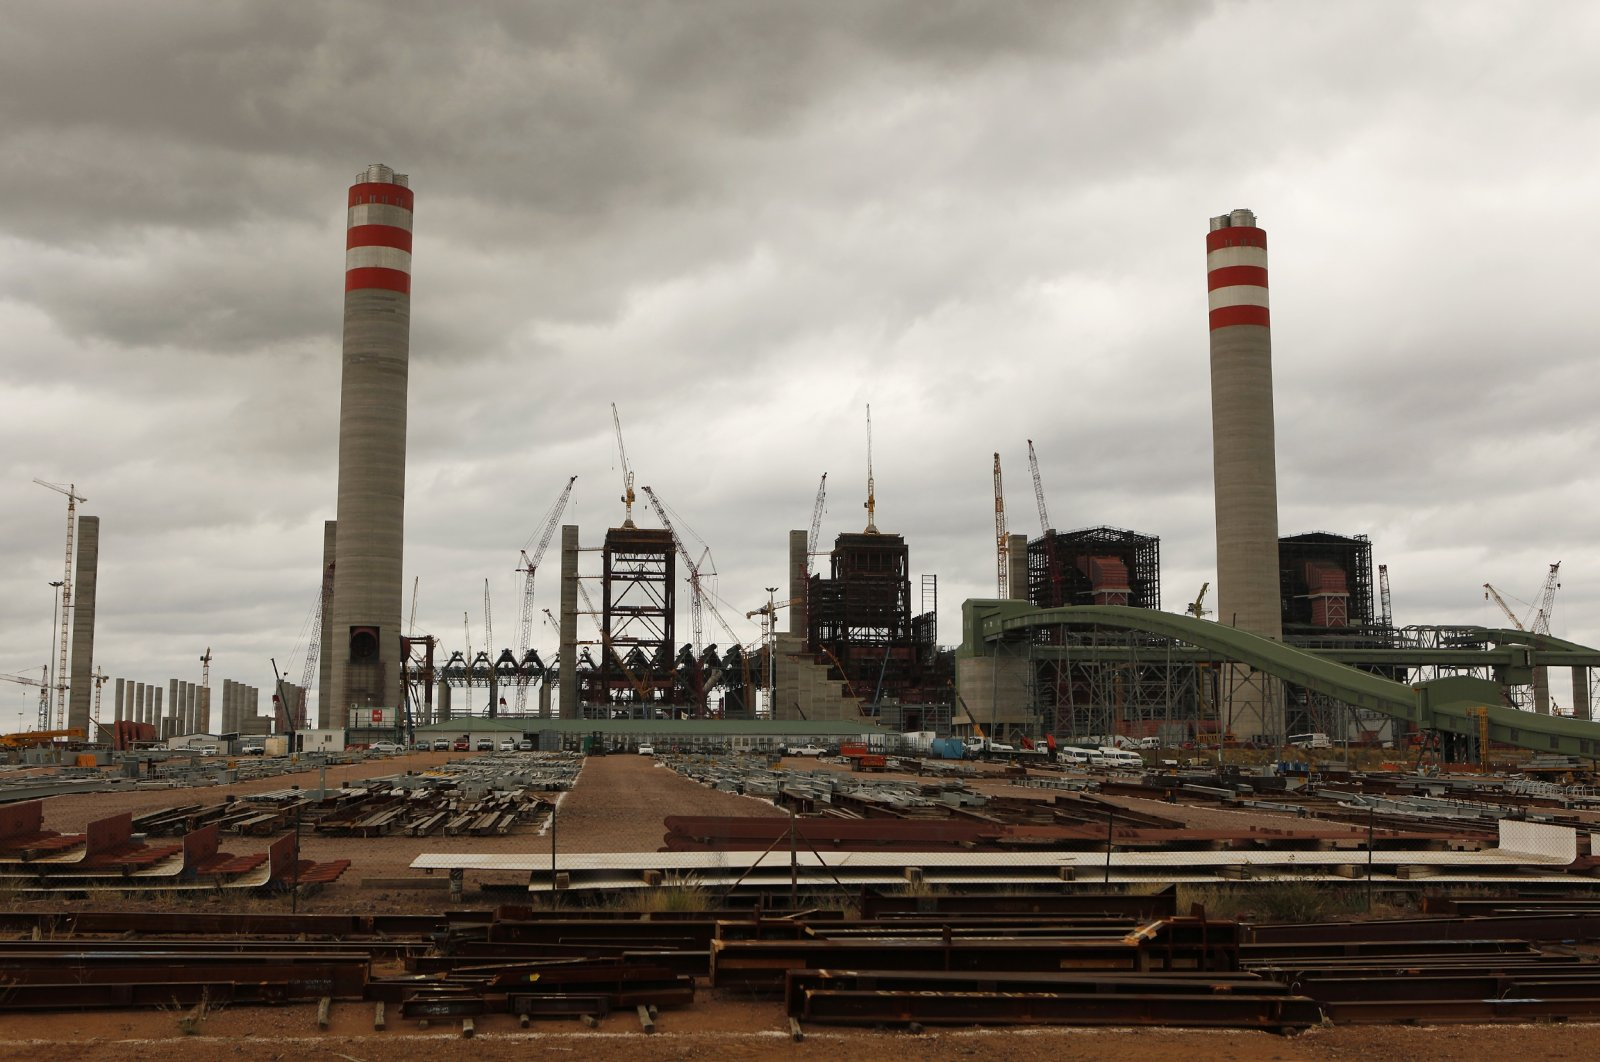 A general view of the construction site at the Medupi power station in Lephalele, South Africa, April 11, 2013. (Reuters Photo)